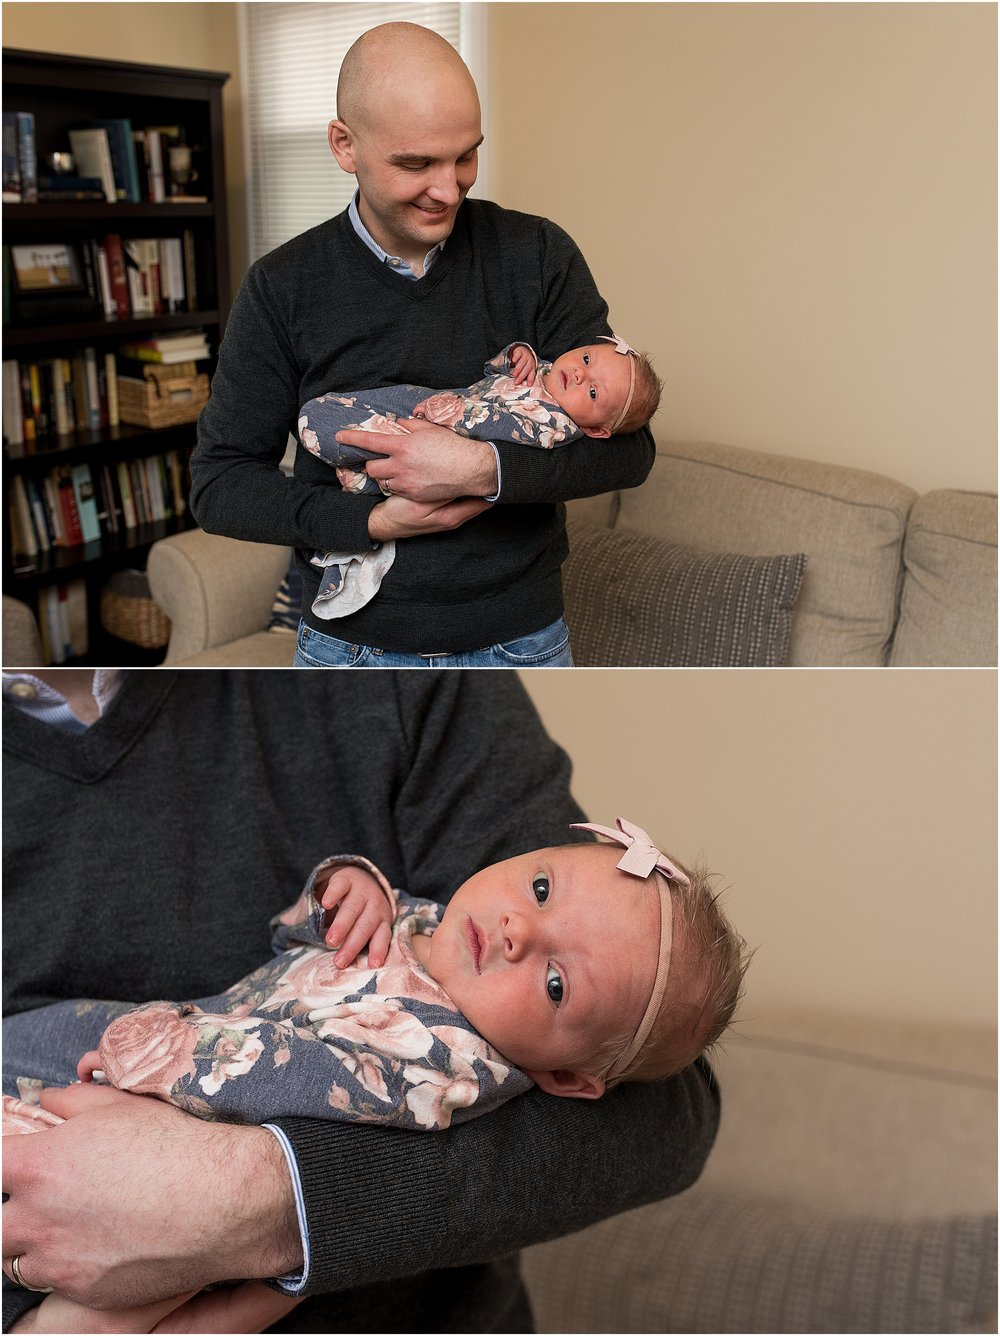 CT baby photographer, Rebecca Lynne photographing newborn girl during at home session.